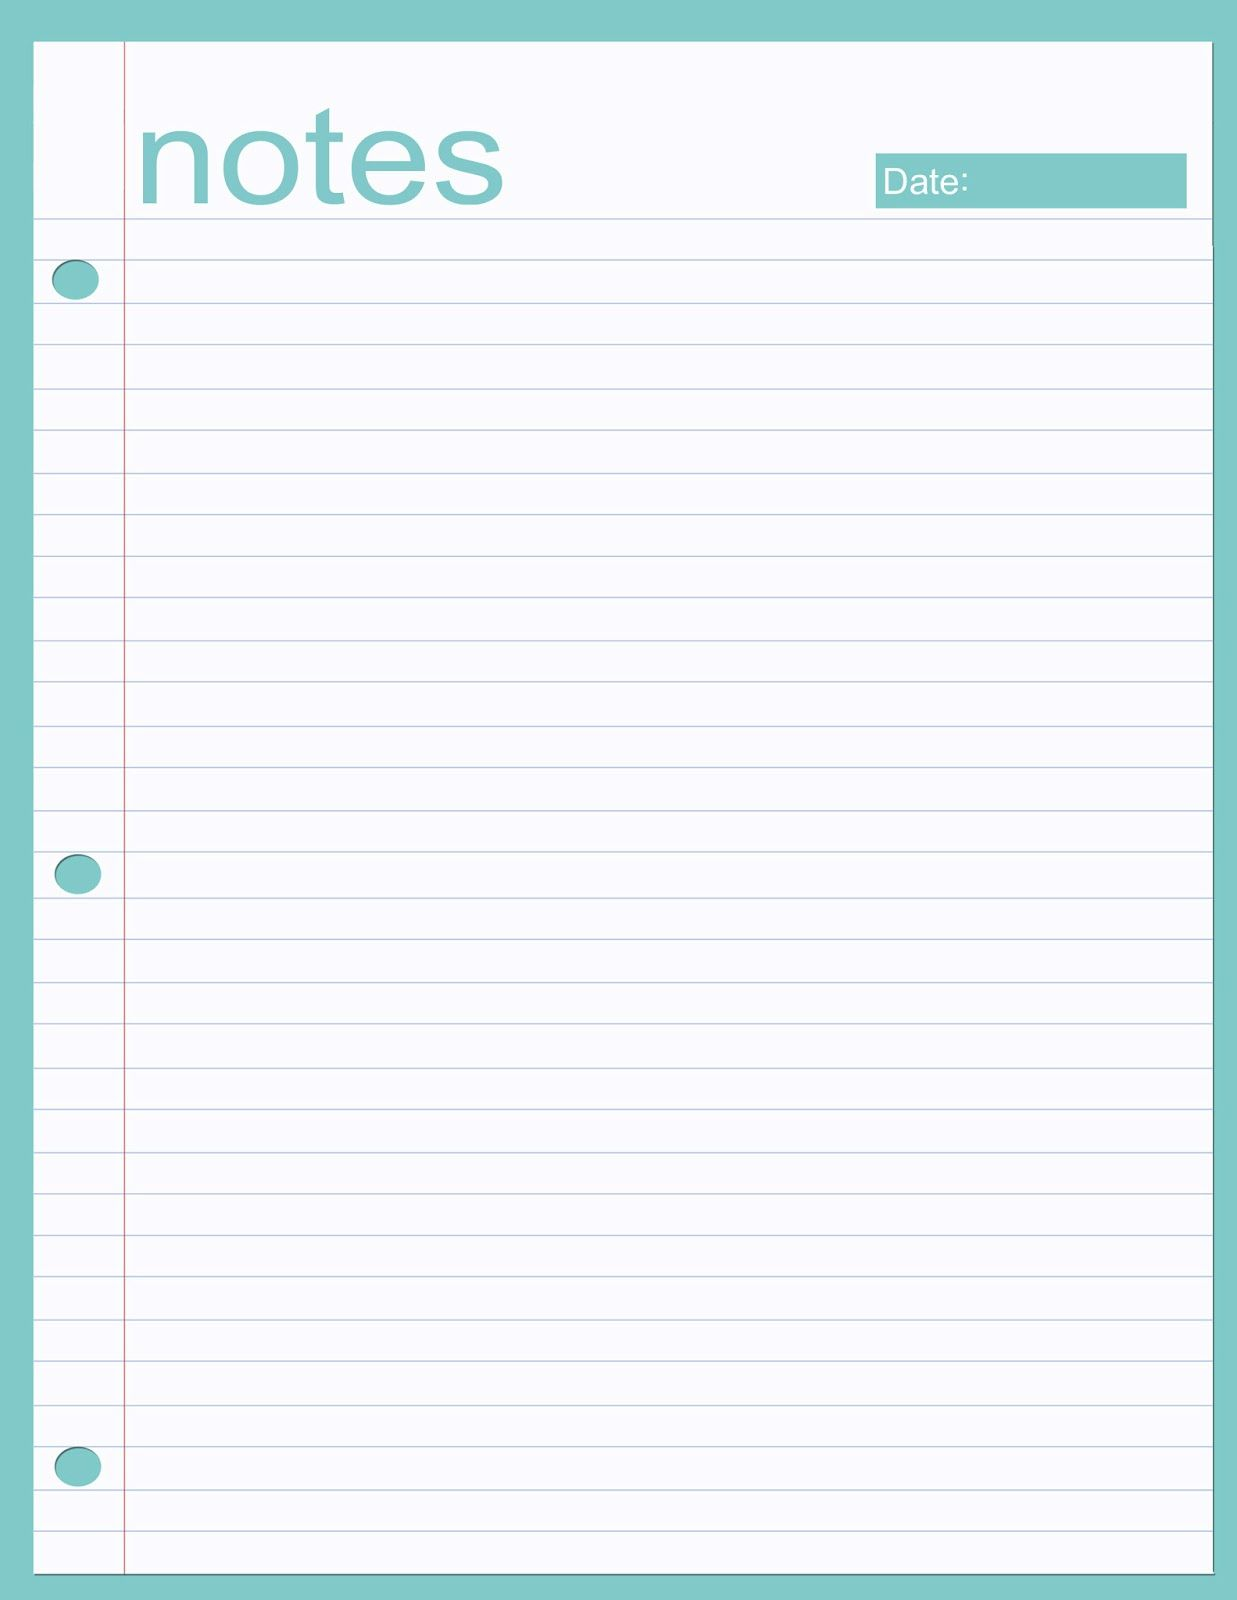 Printable notes page | Planners | Pinterest | Notes, Printables